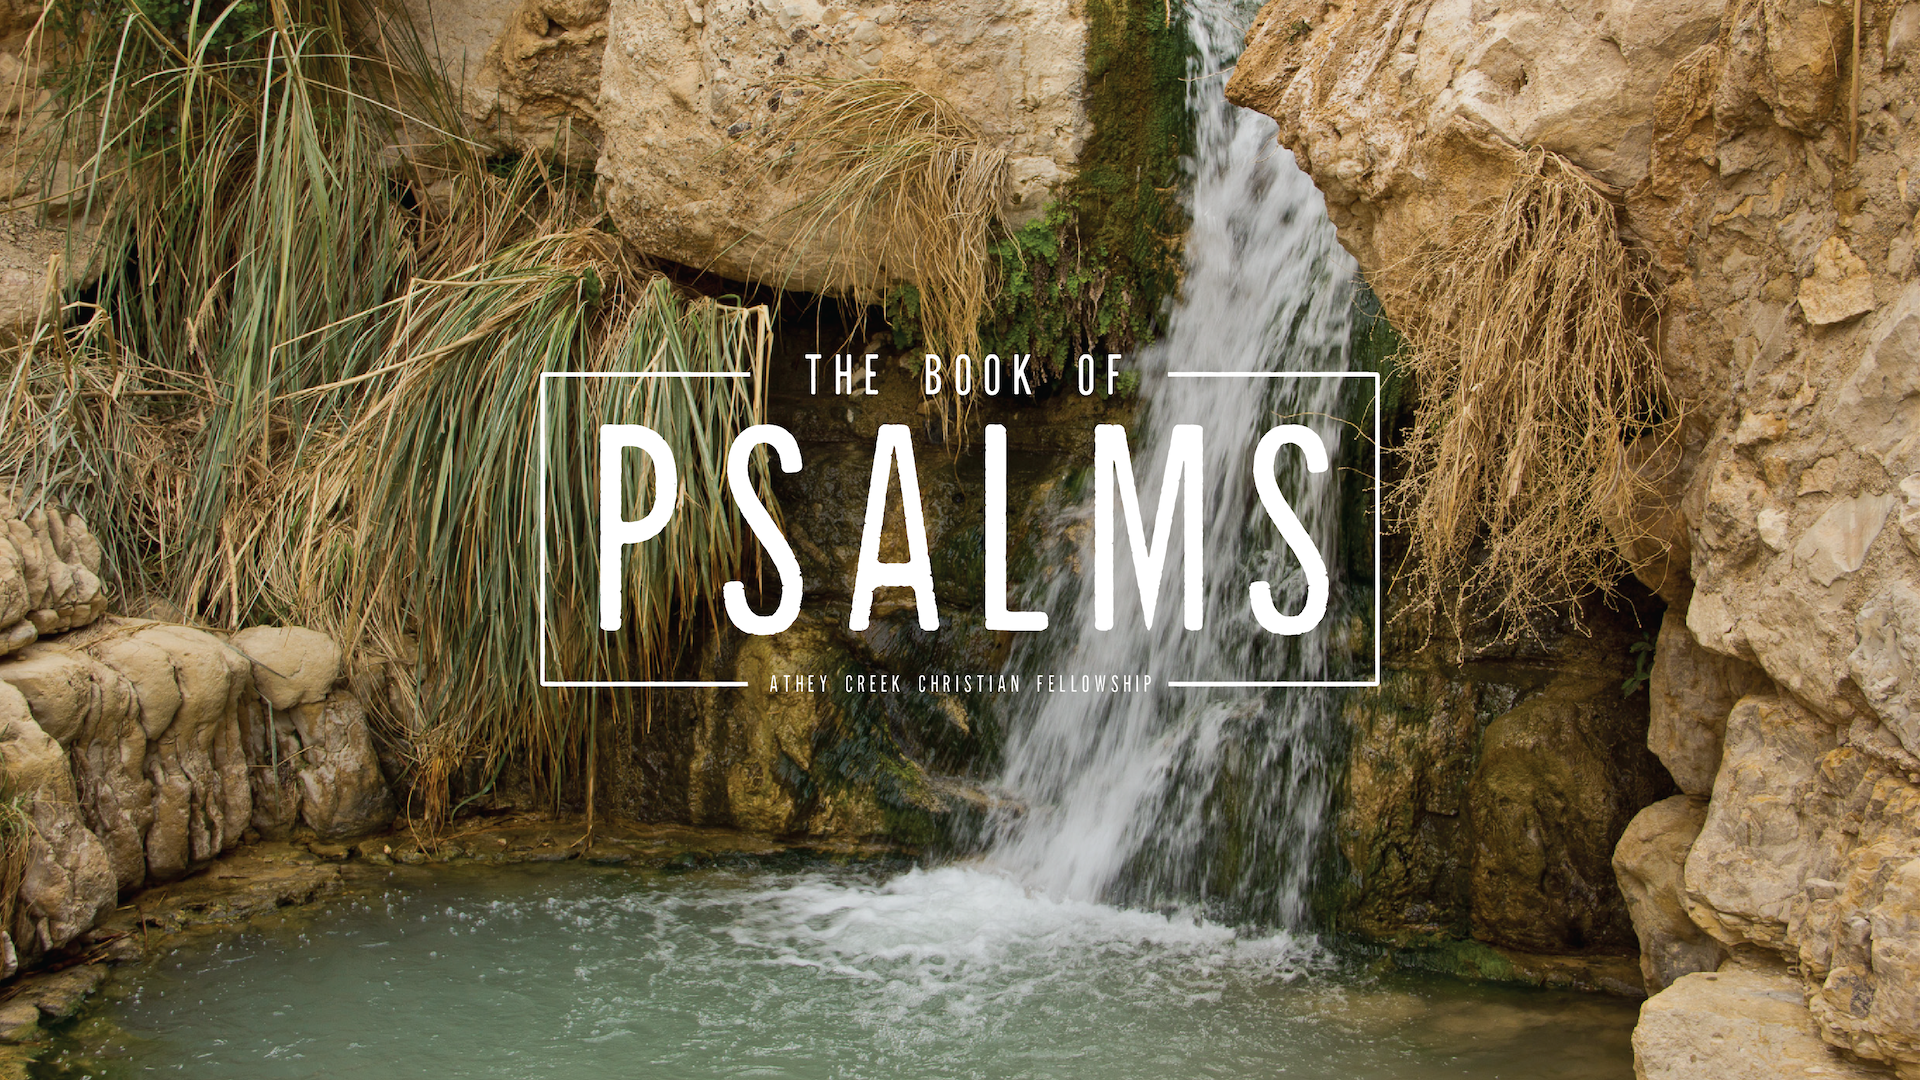 Poster forThrough the Bible (Psalms 103-105)